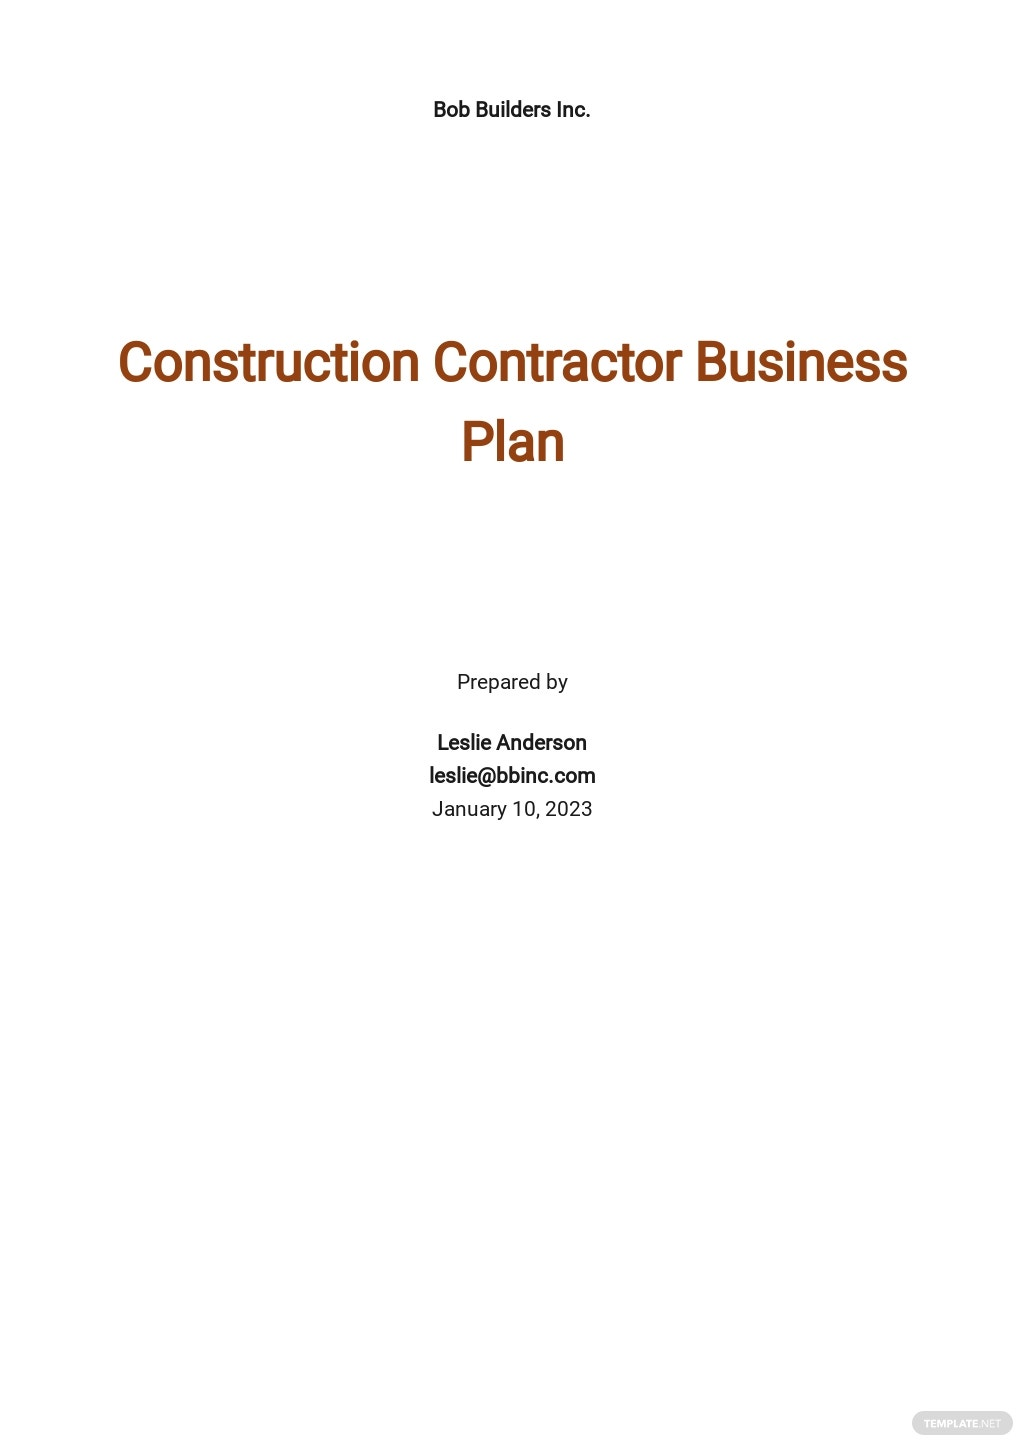 Construction Contractor Business Plan Template.jpe